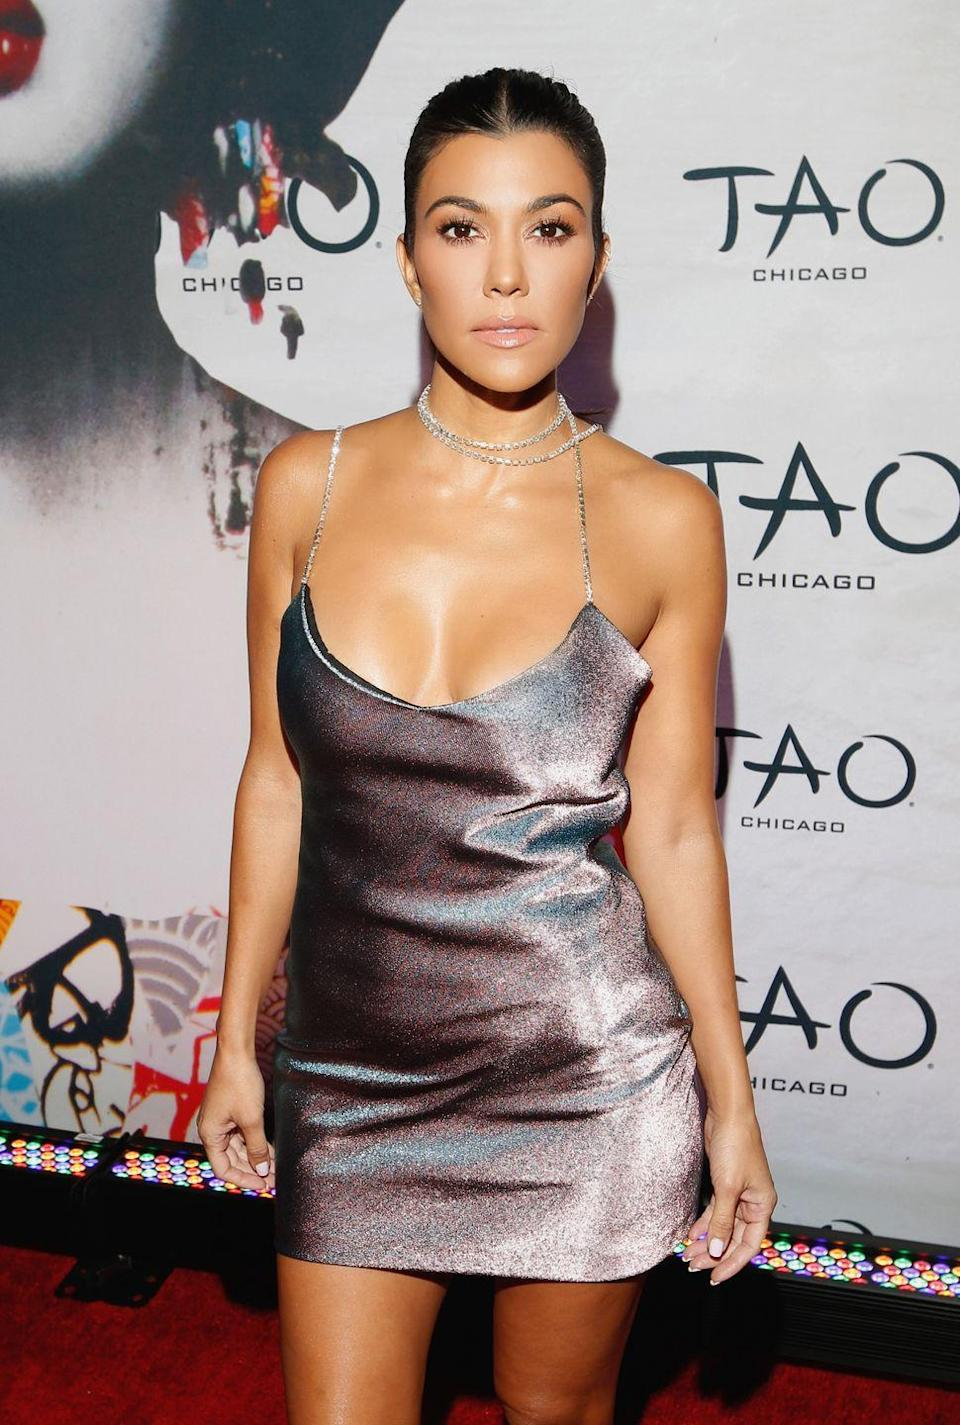 """<p>Kourtney Kardashian got breast implants when she was 22, but on an episode of Keeping Up With The Kardashians, she said she wished she hadn't. 'I had my boobs done but if I could go back, I wouldn't have done it. I was so cute before,' <a href=""""https://people.com/health/crystal-hefner-kourtney-kardashian-celebs-who-regret-getting-breast-implants/?slide=2345419#2345419"""" rel=""""nofollow noopener"""" target=""""_blank"""" data-ylk=""""slk:she said"""" class=""""link rapid-noclick-resp"""">she said</a>. 'I've realised that I was made to look a certain way and I'm considering removing them.'</p>"""